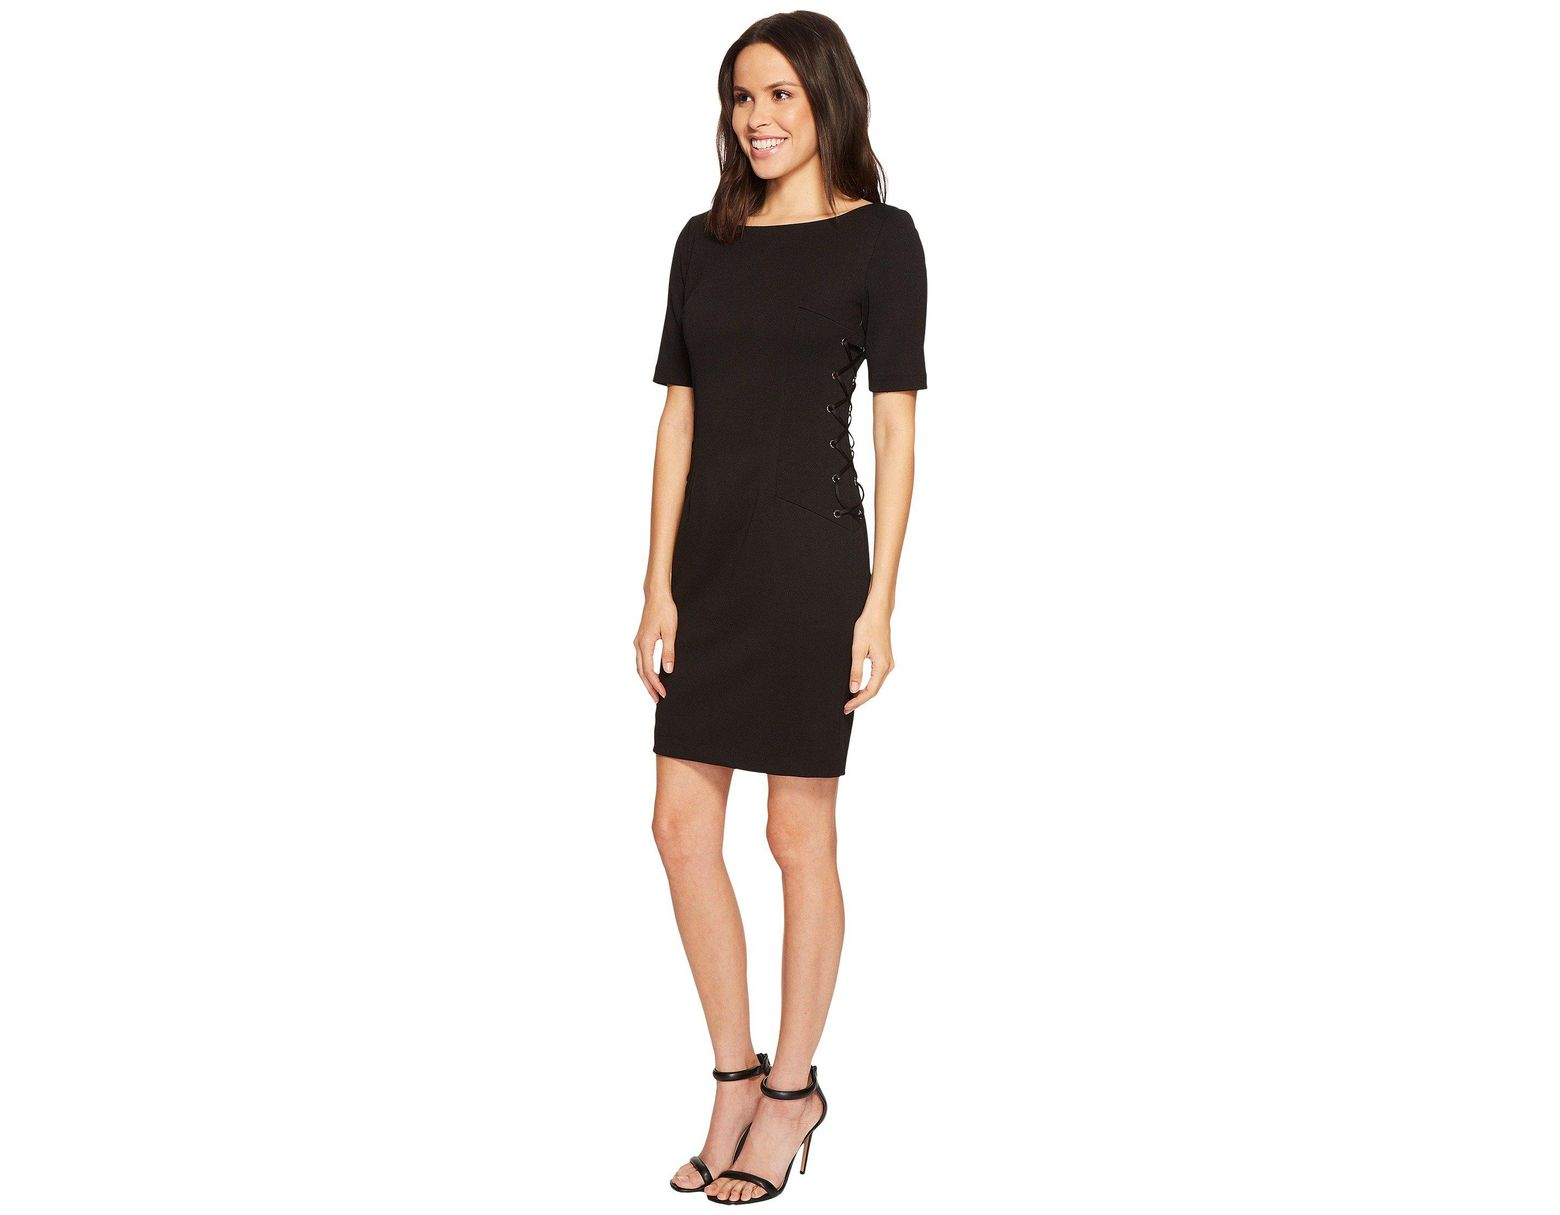 ad2fcd058186 Adrianna Papell Micro Ottoman Sheath Dress With Lace-up Detail And Elbow  Sleeve in Black - Save 51% - Lyst